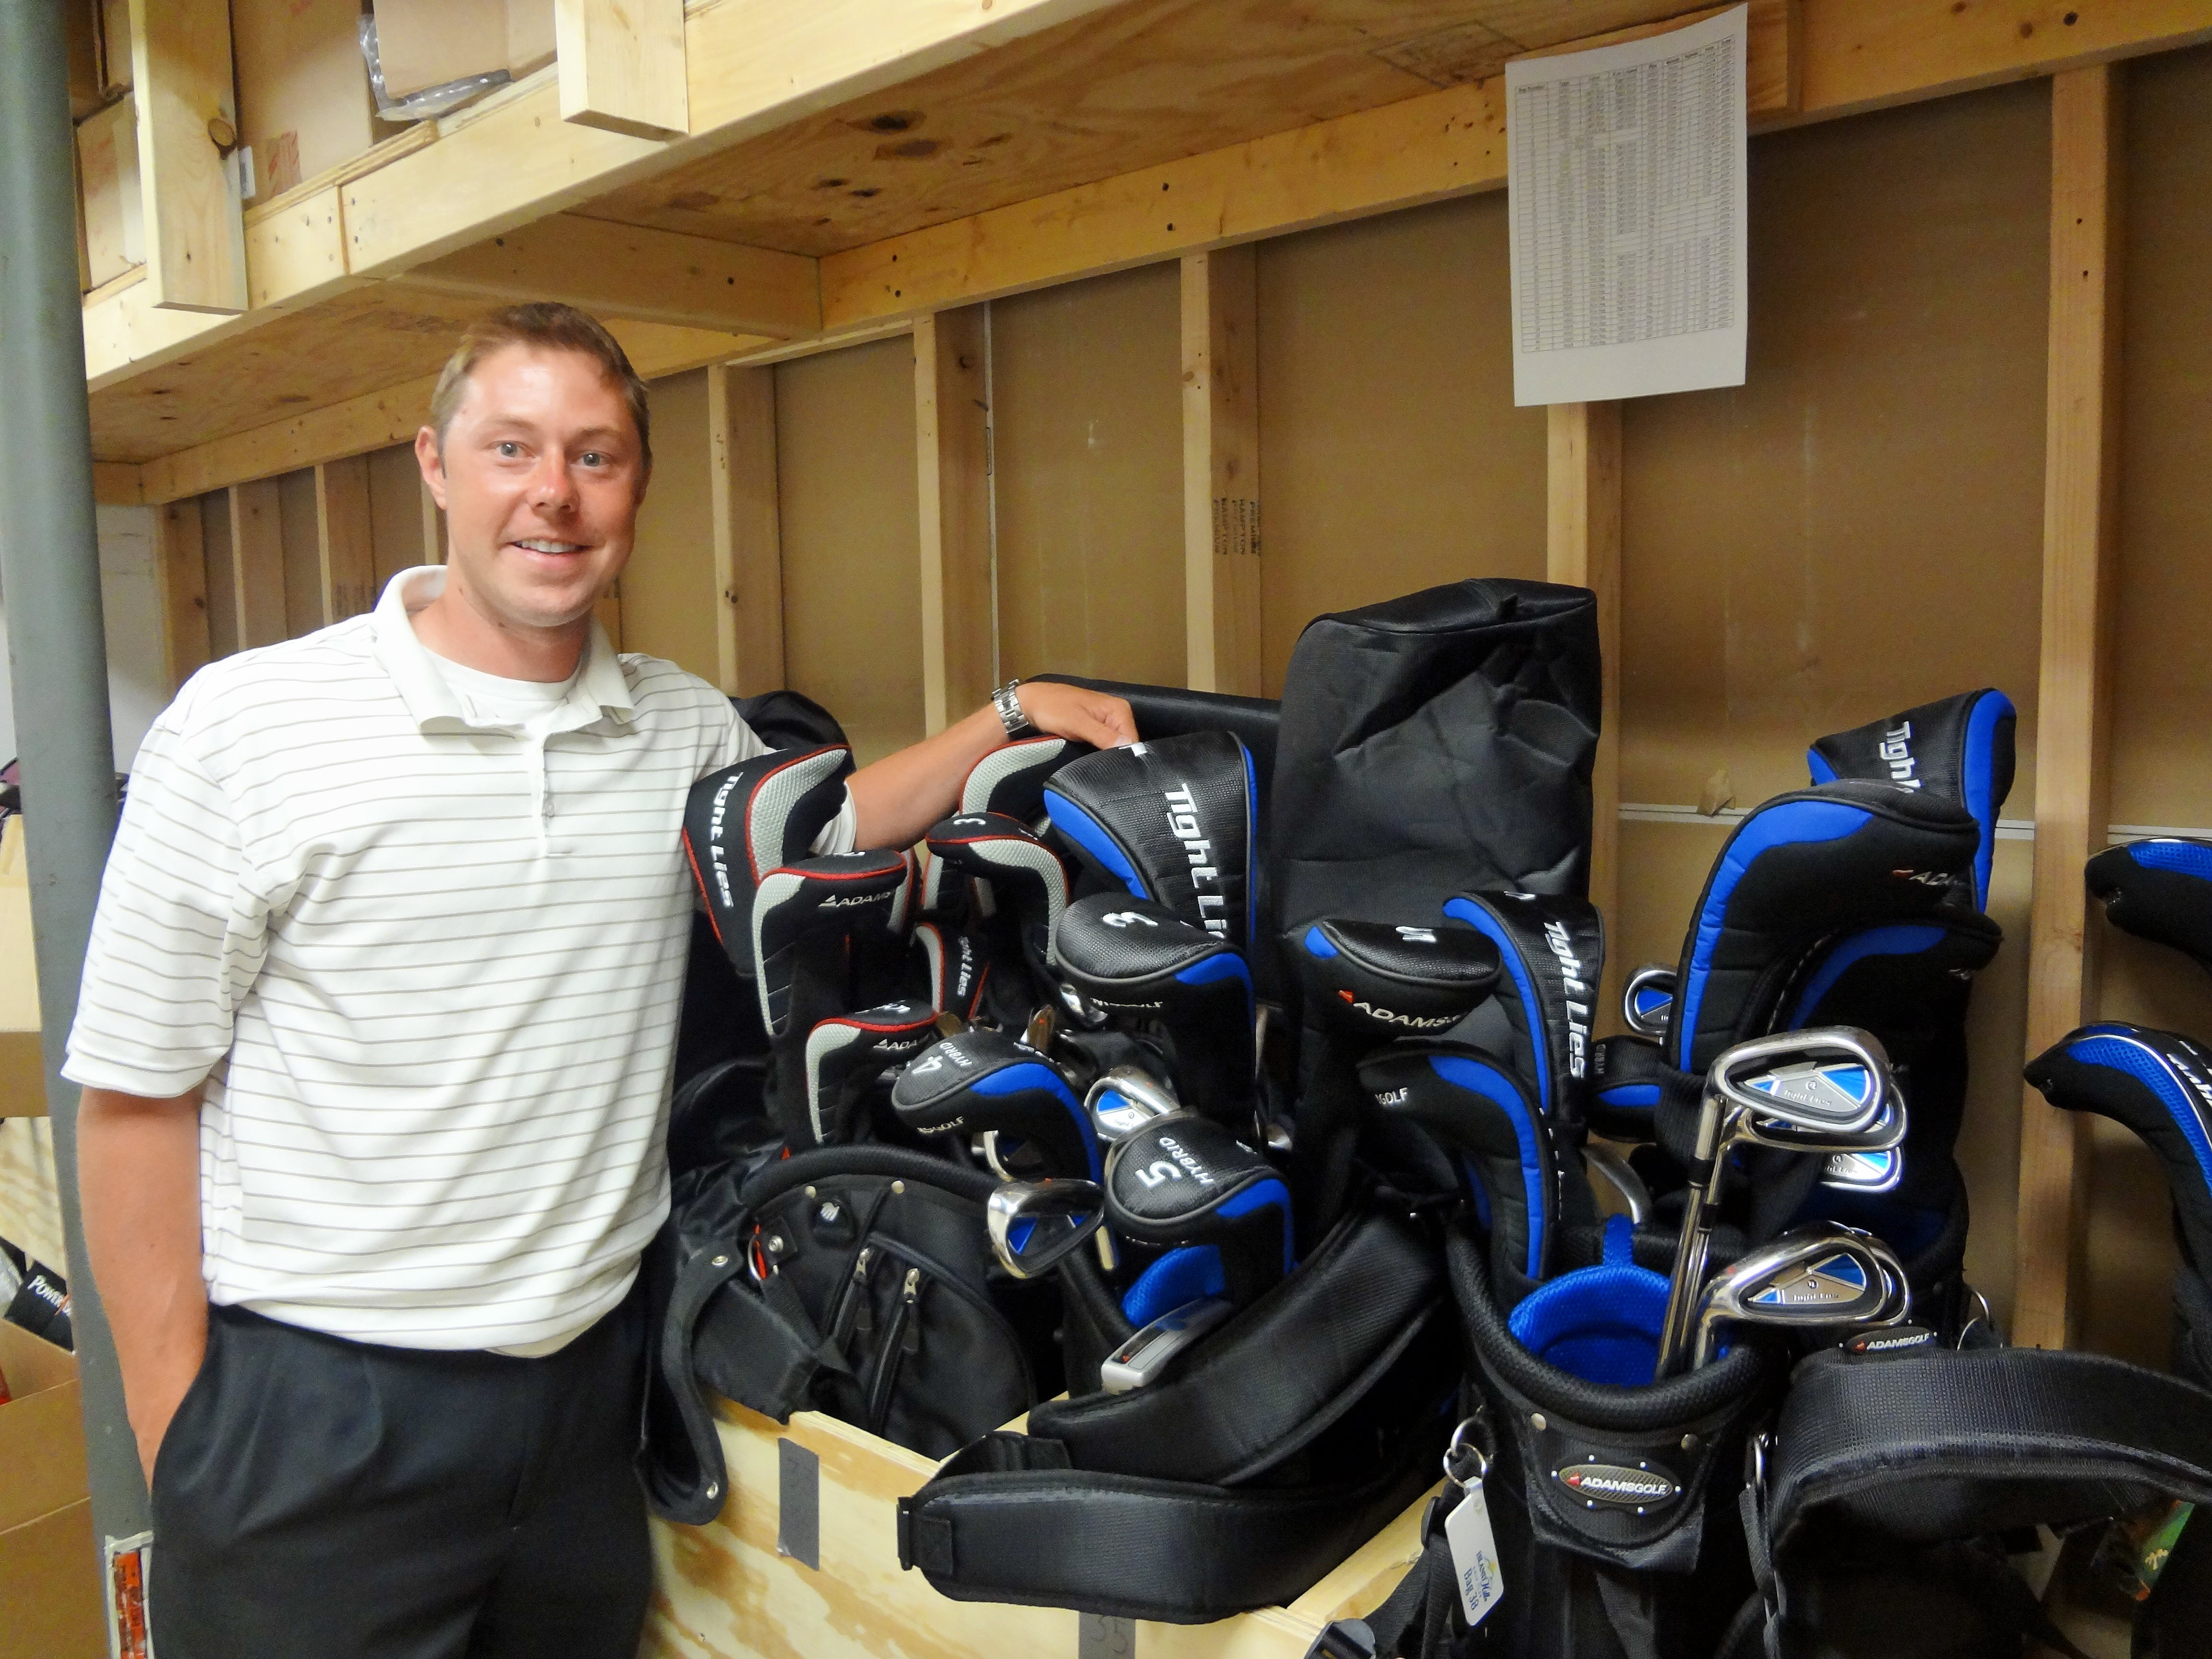 Island Hills' Tim Cole has the clubs to get new players started in golf.